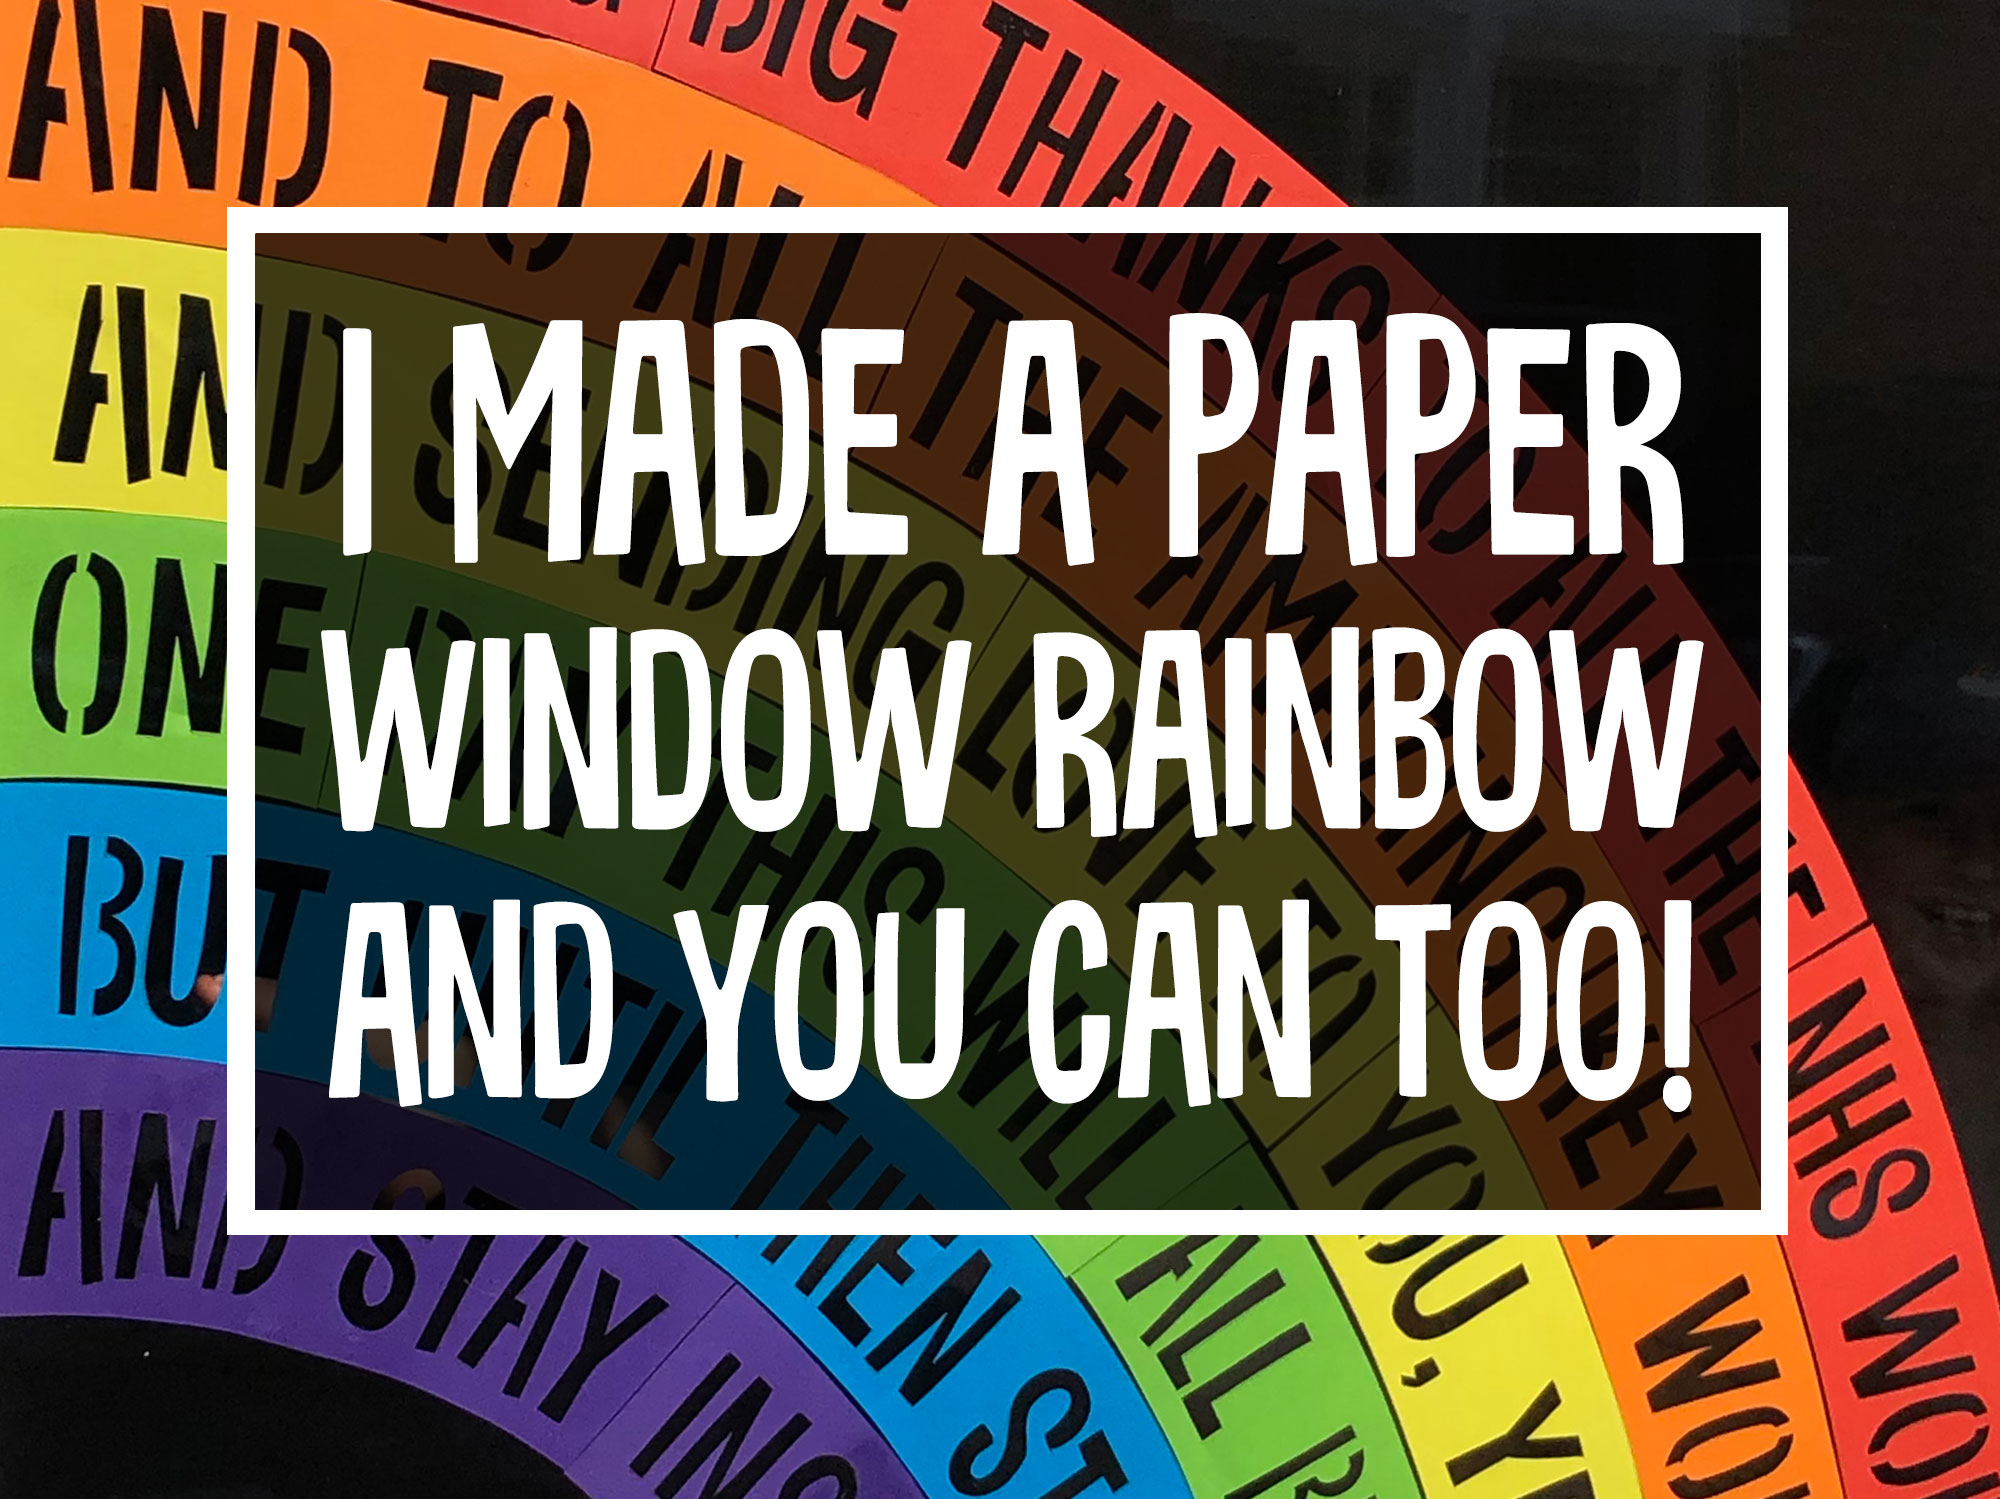 Window Rainbow FREE template to cut or colour